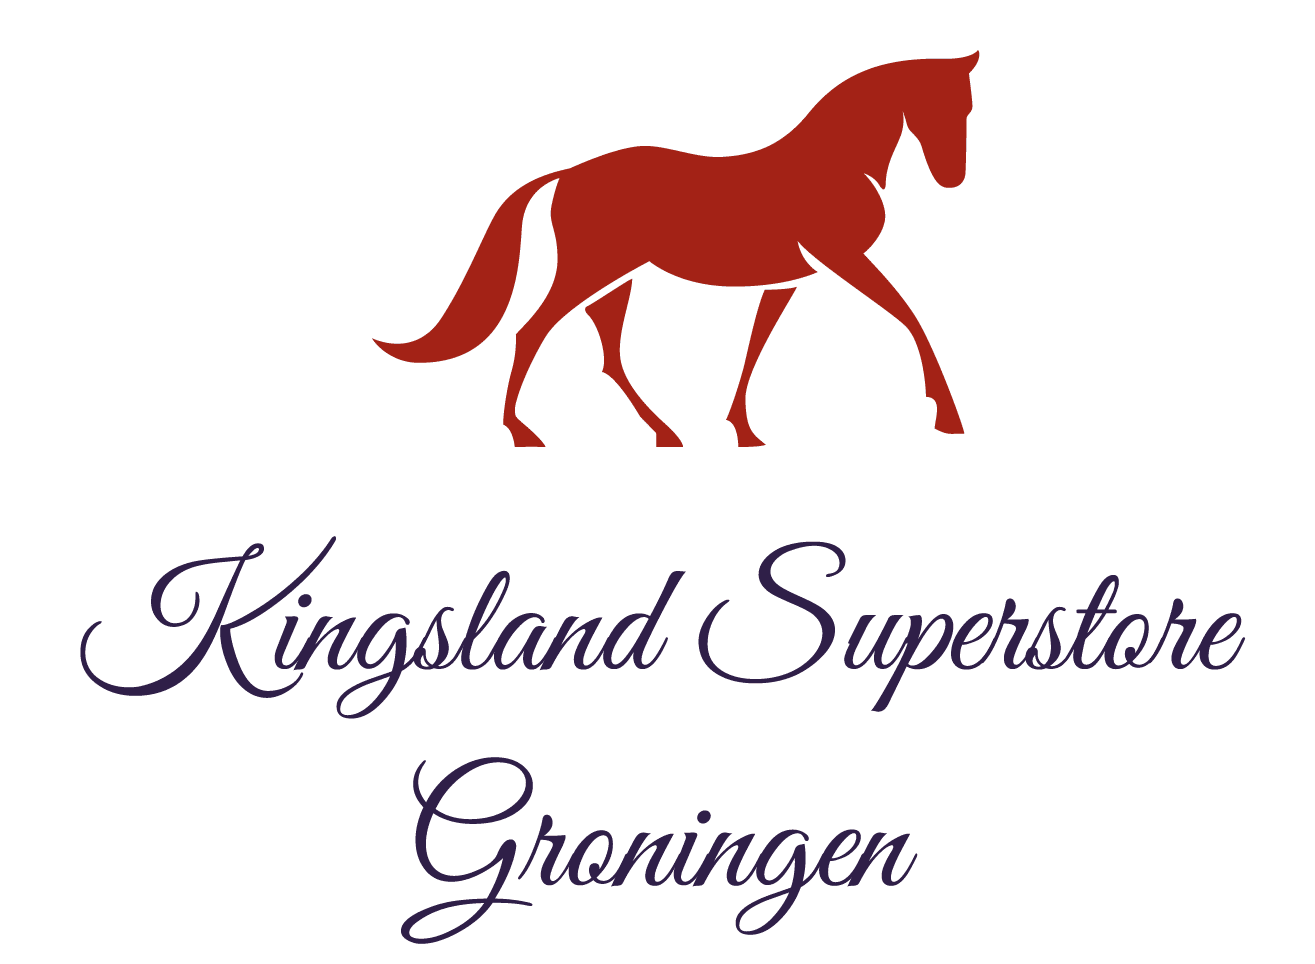 logo van Kingsland superstore